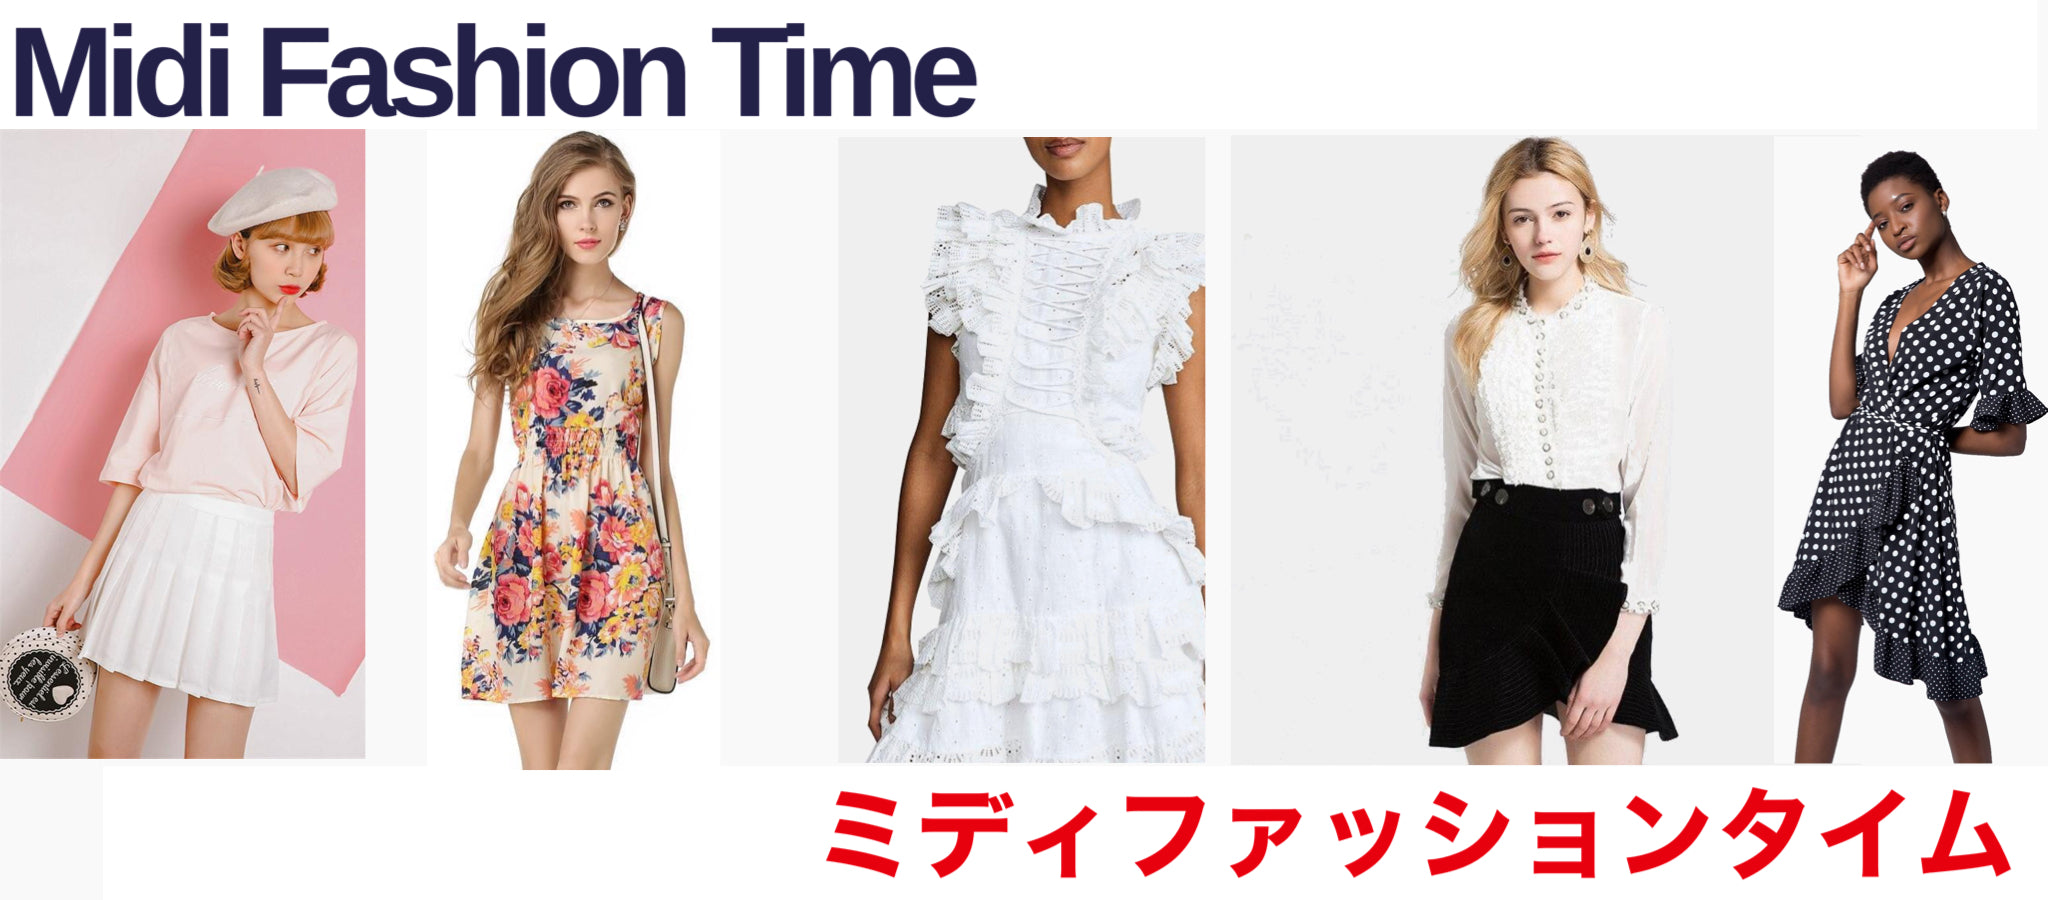 miTeigi | Woman Midi Fashion Collection | Japanese Apparel and Home Decor Retail Shopping